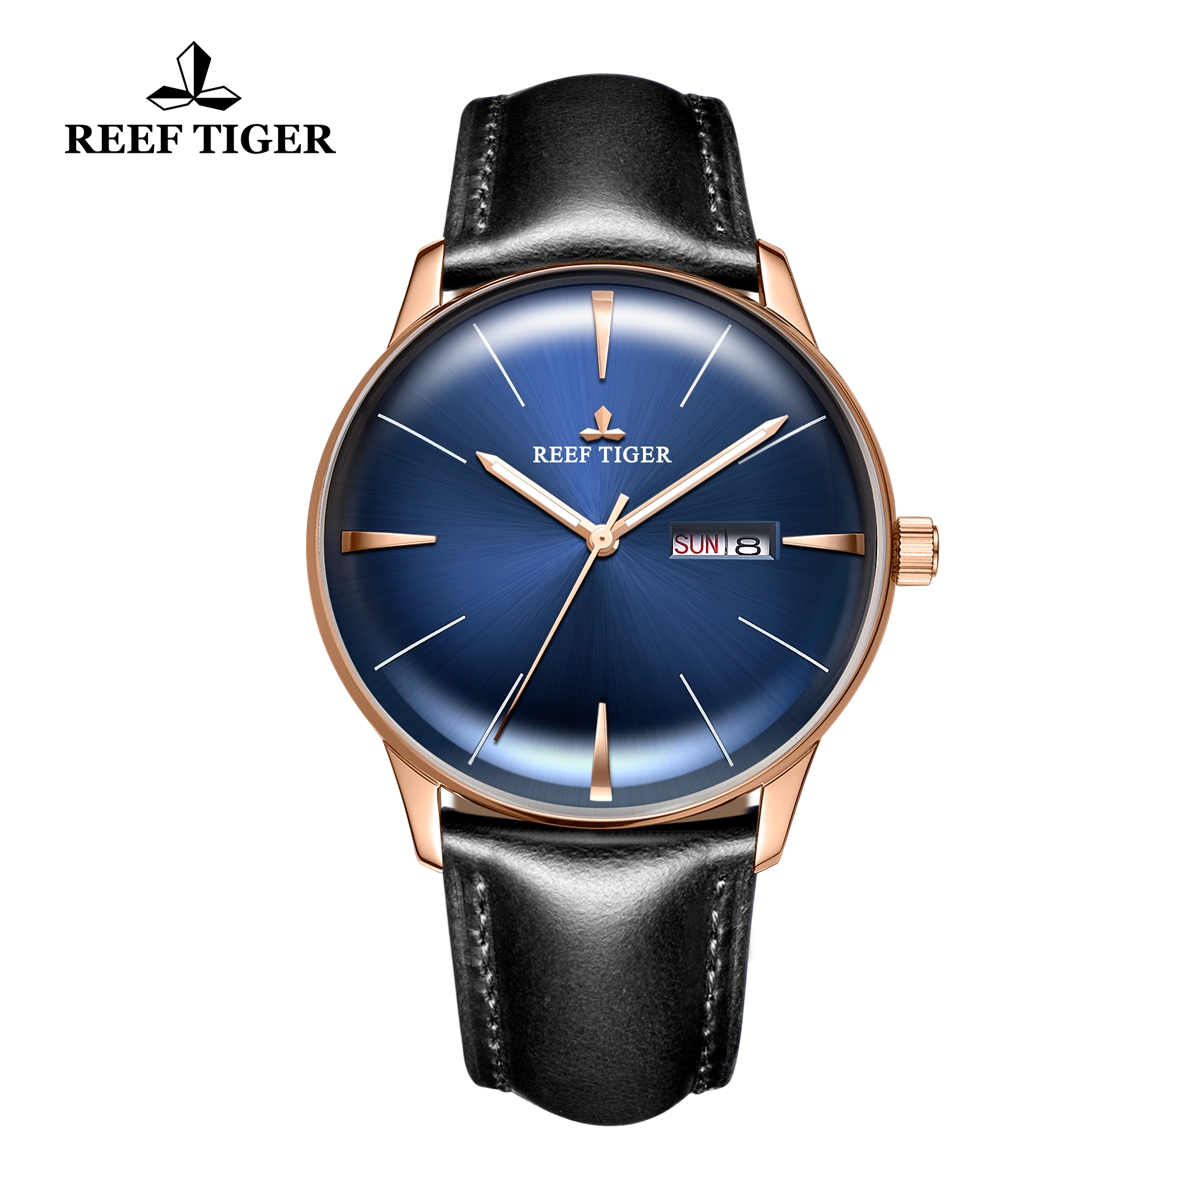 Reef Tiger Classic Heritor Men's Luxury Watch Blue Dial Leather Strap Automatic Watches RGA8238-PLBH